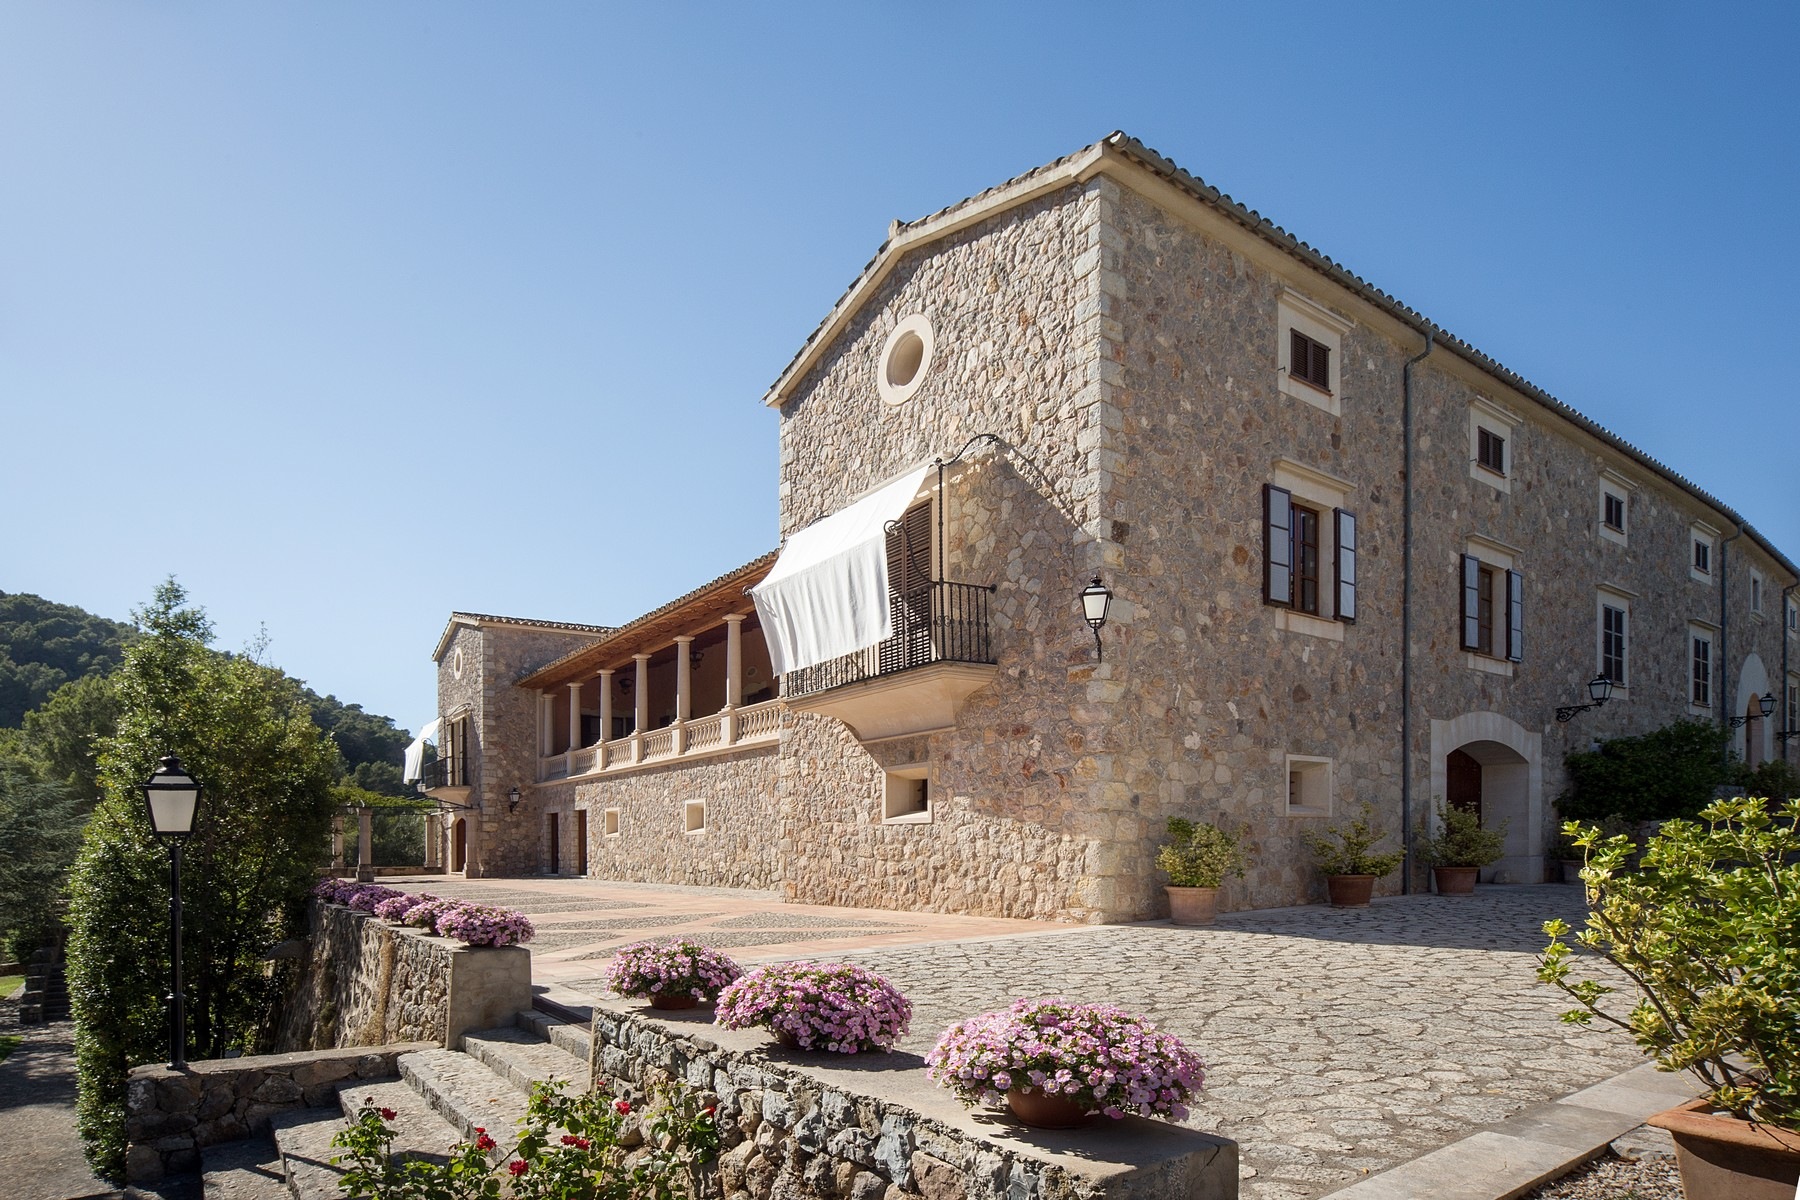 Single Family Homes for Sale at Unique Majorcan Rural Estate in Puigpunyent Puigpunyent, Mallorca 07195 Spain